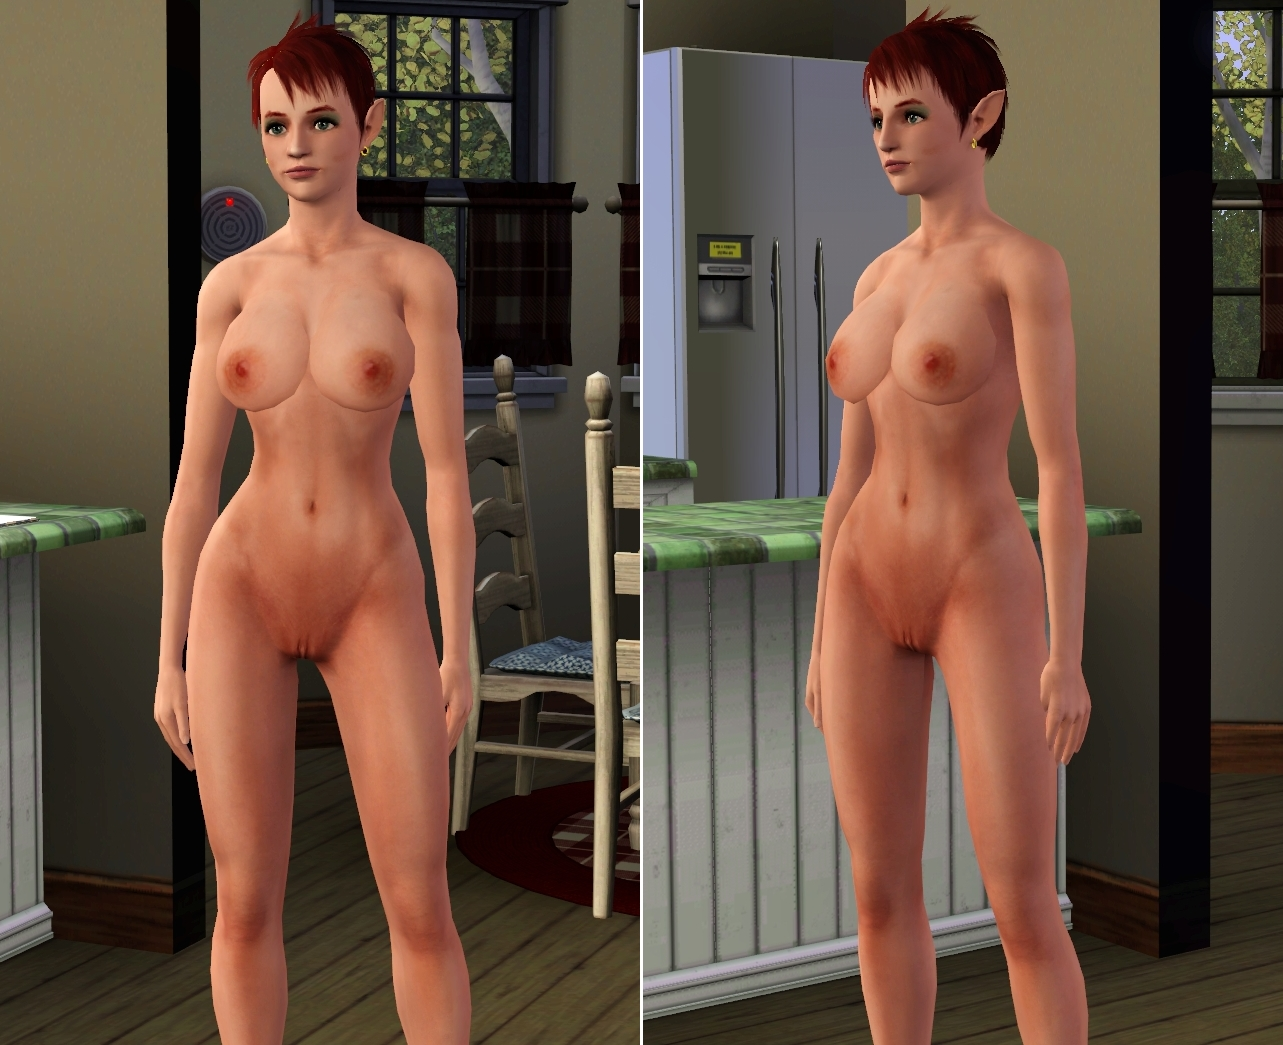 The sims 2 game mods erotic pornos comic